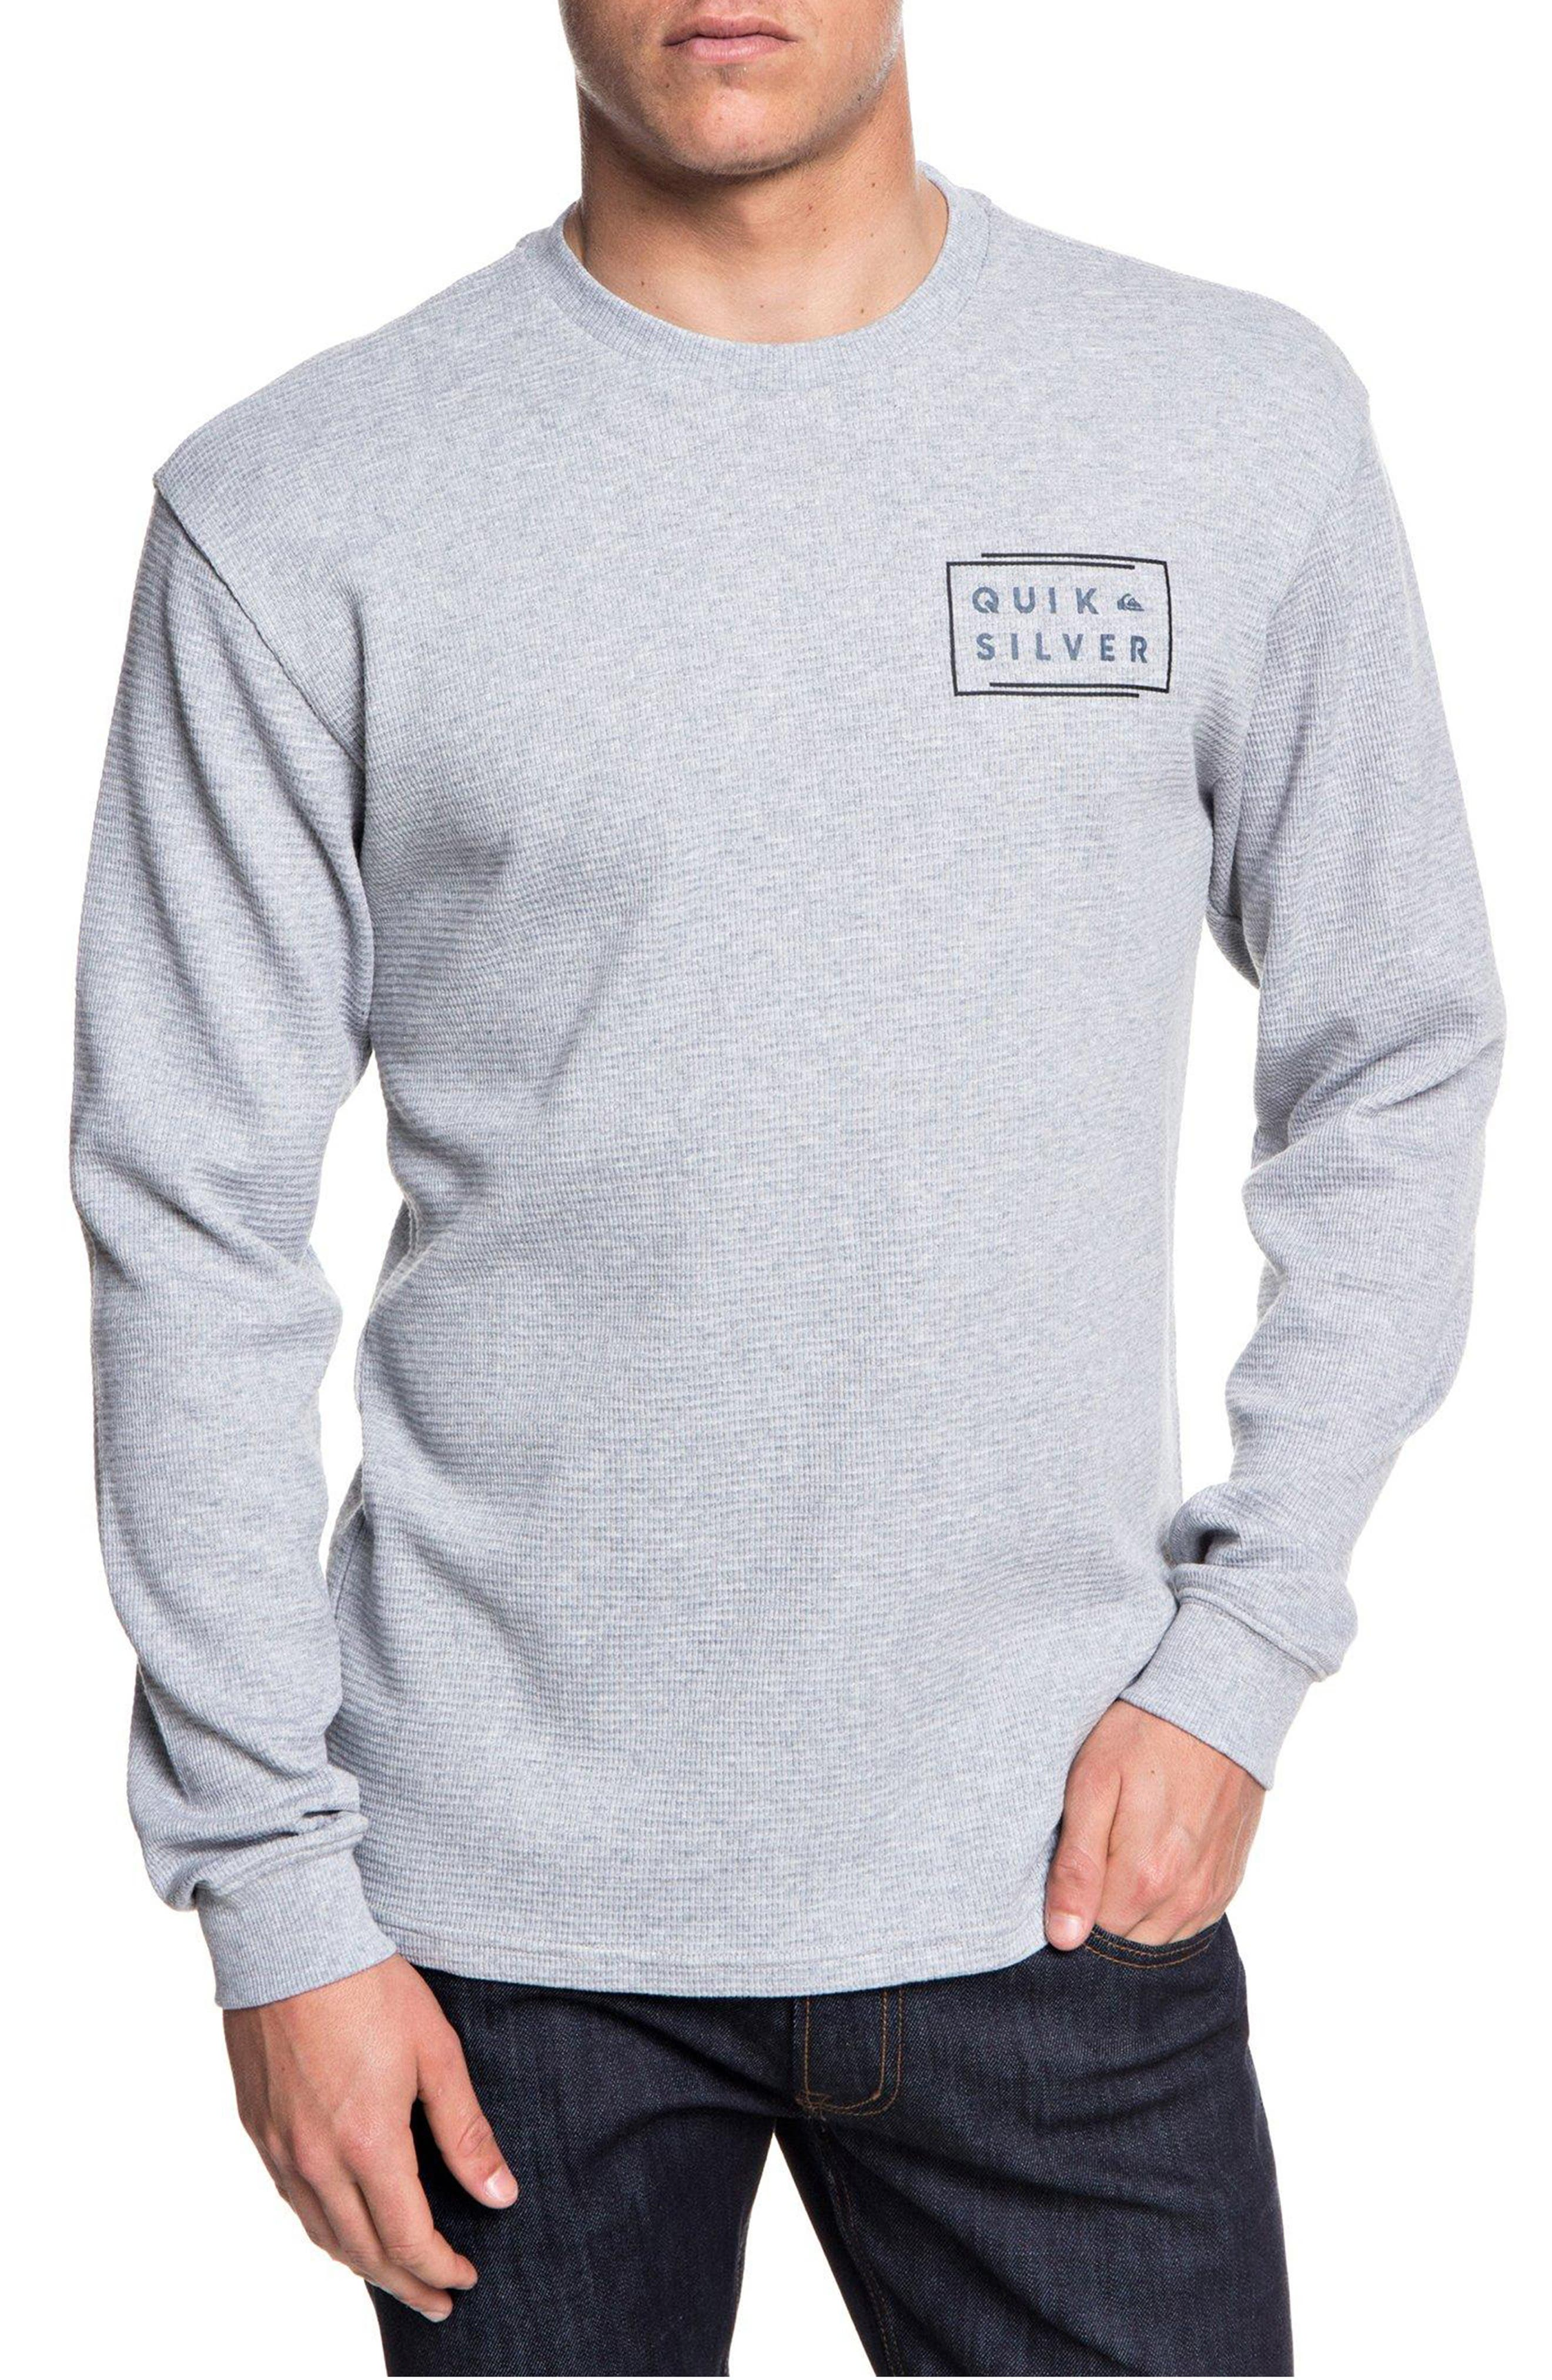 QUIKSILVER Worldwide Thermal T-Shirt in Athletic Heather